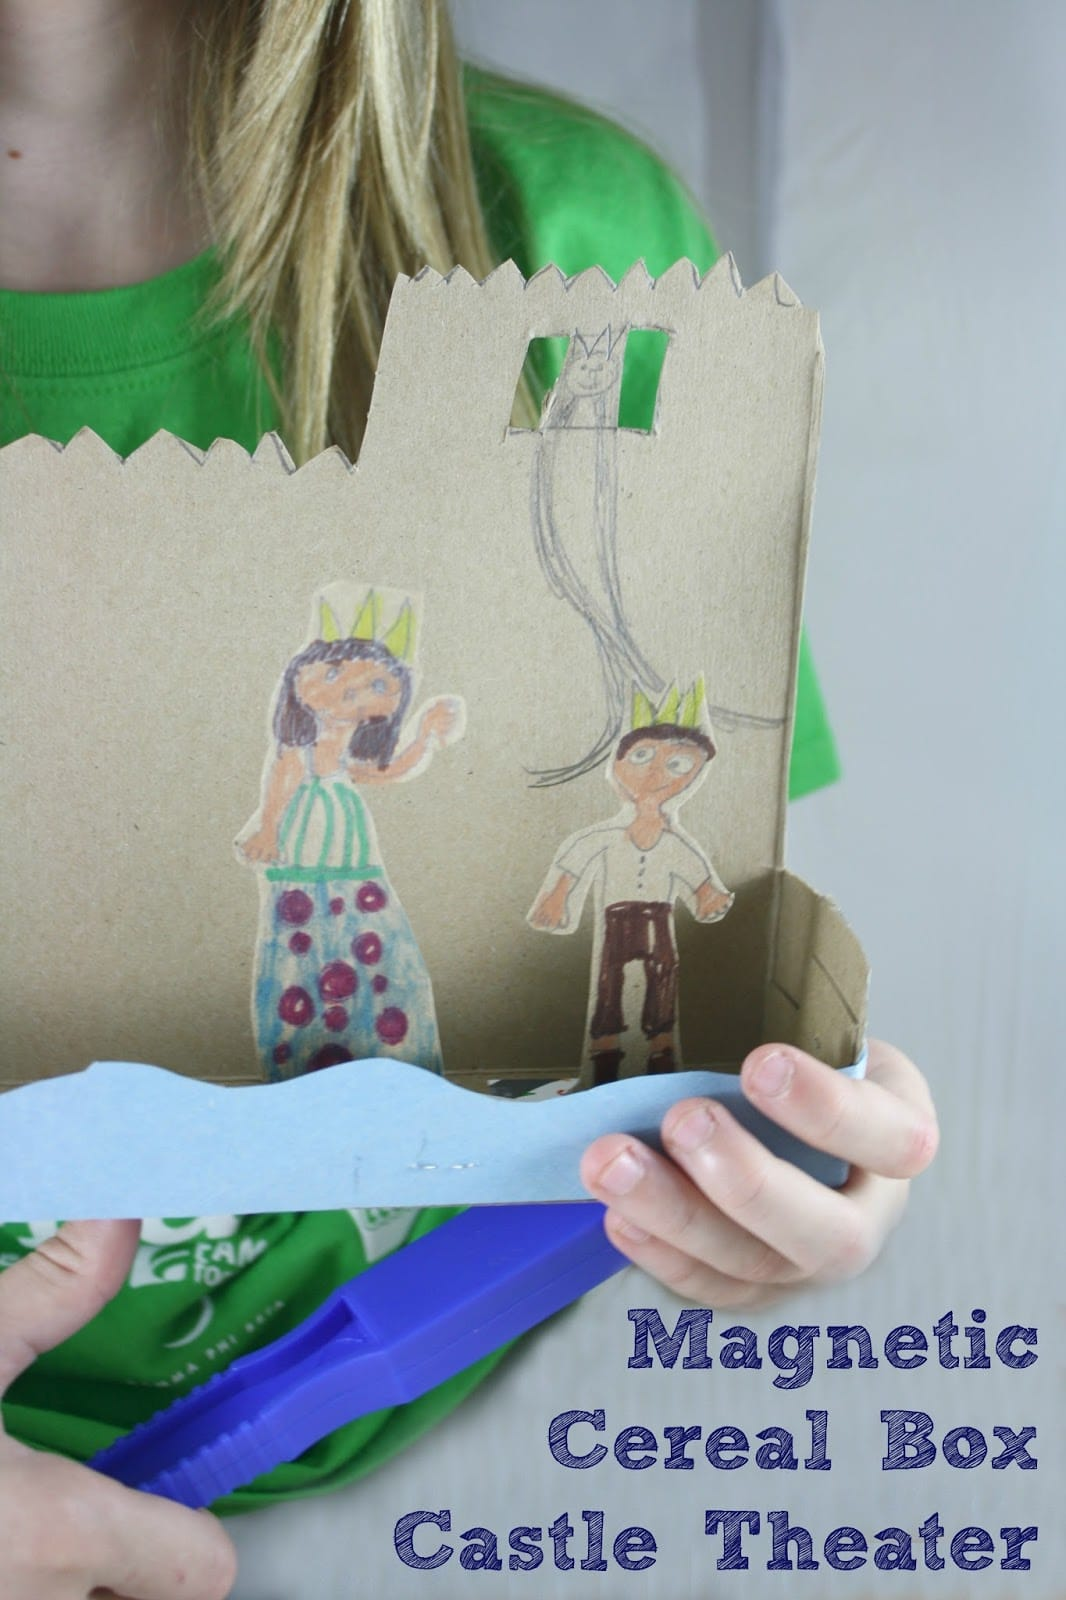 Invite children to create their own stories with this Magnetic Cereal Box Castle Theater, an eco-craft that ties in science and literacy.